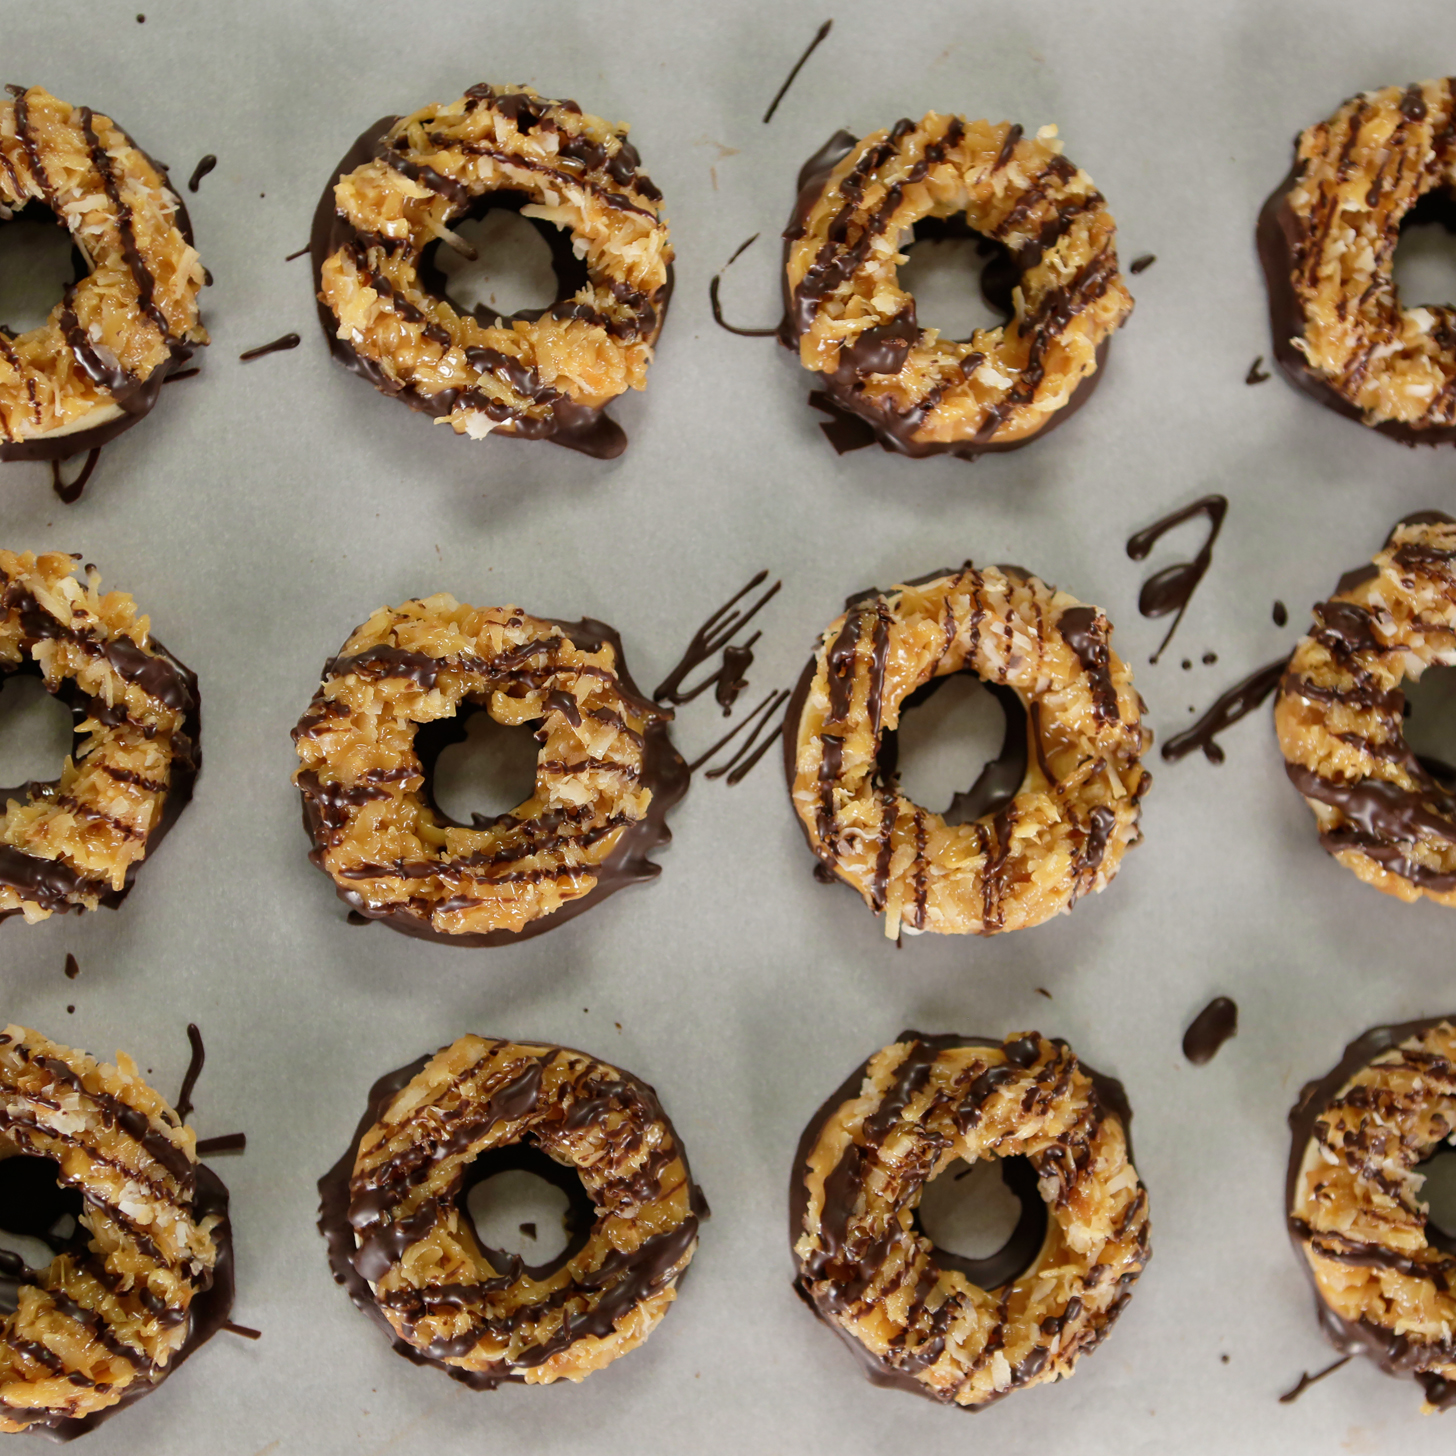 Homemade Samoas Cookie Recipe | POPSUGAR Food